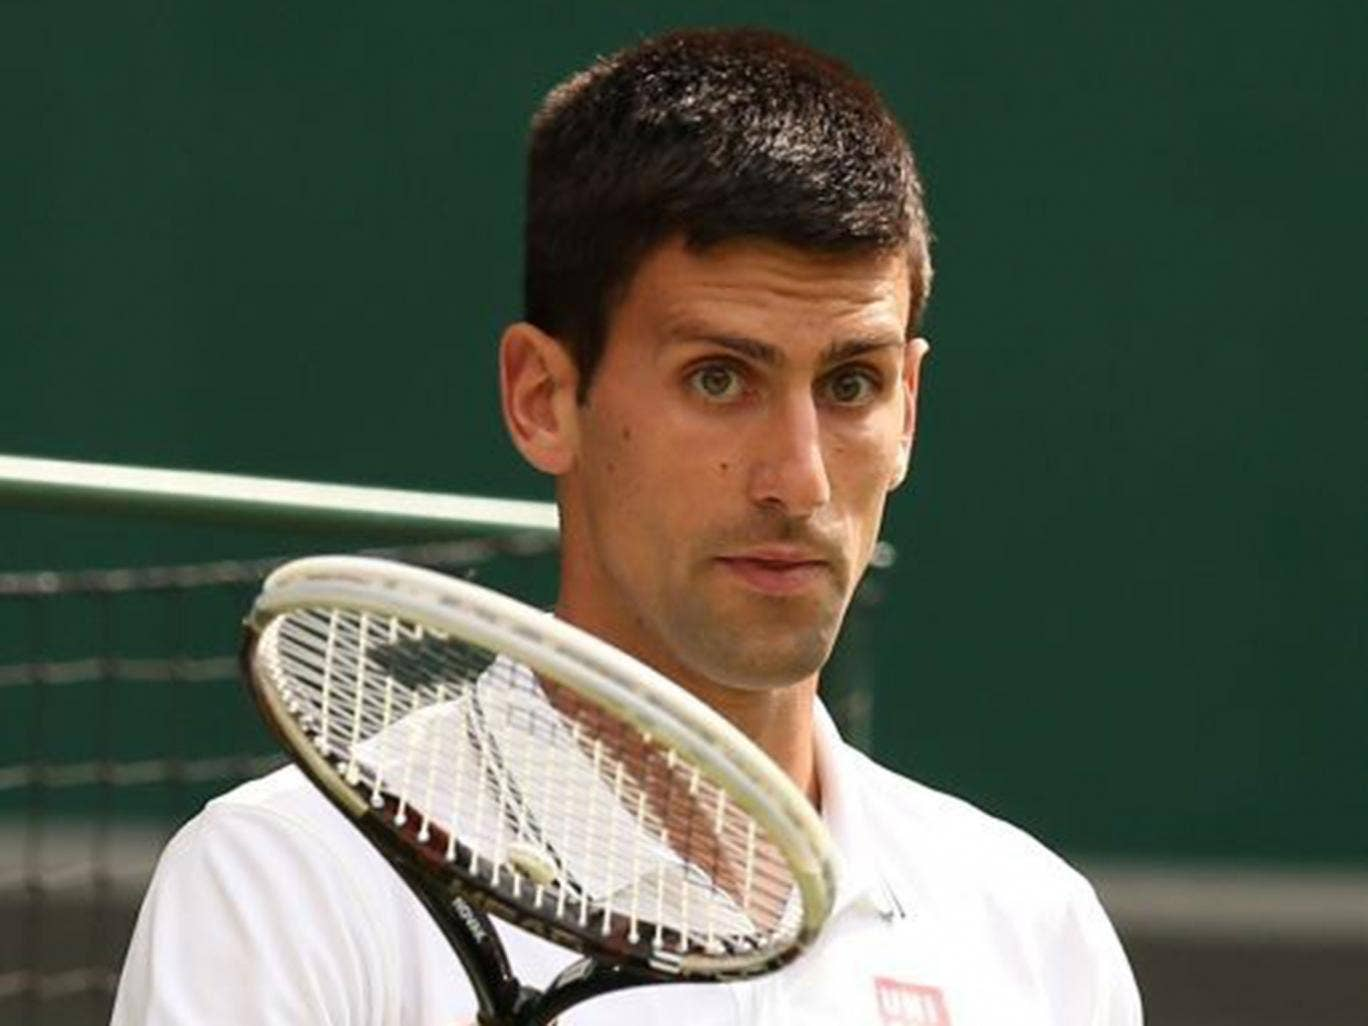 Protection racket: When Djokovic steps out in front of the crowd he is stony-faced